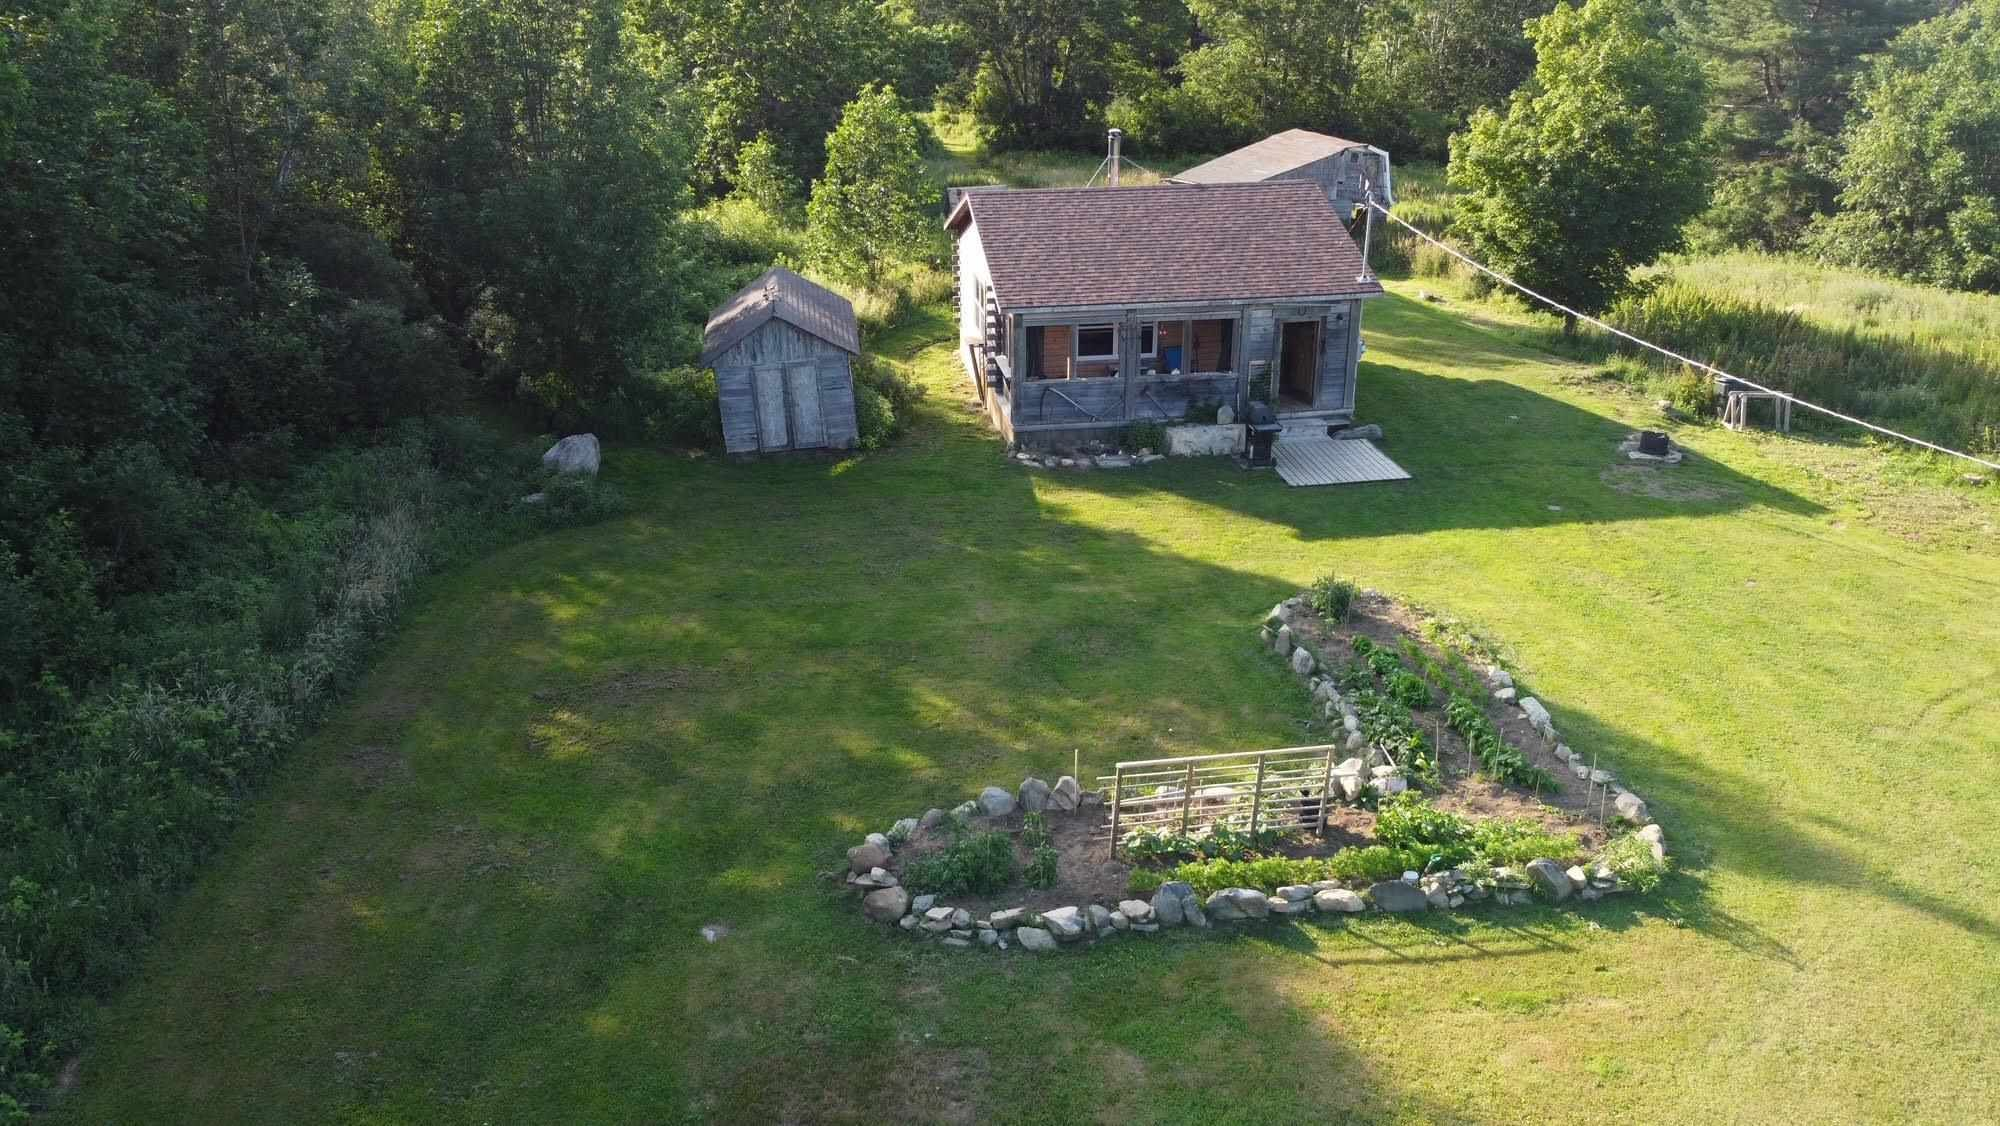 Main Photo: 187 BLOOMFIELD Road in Bloomfield: 401-Digby County Residential for sale (Annapolis Valley)  : MLS®# 202117551